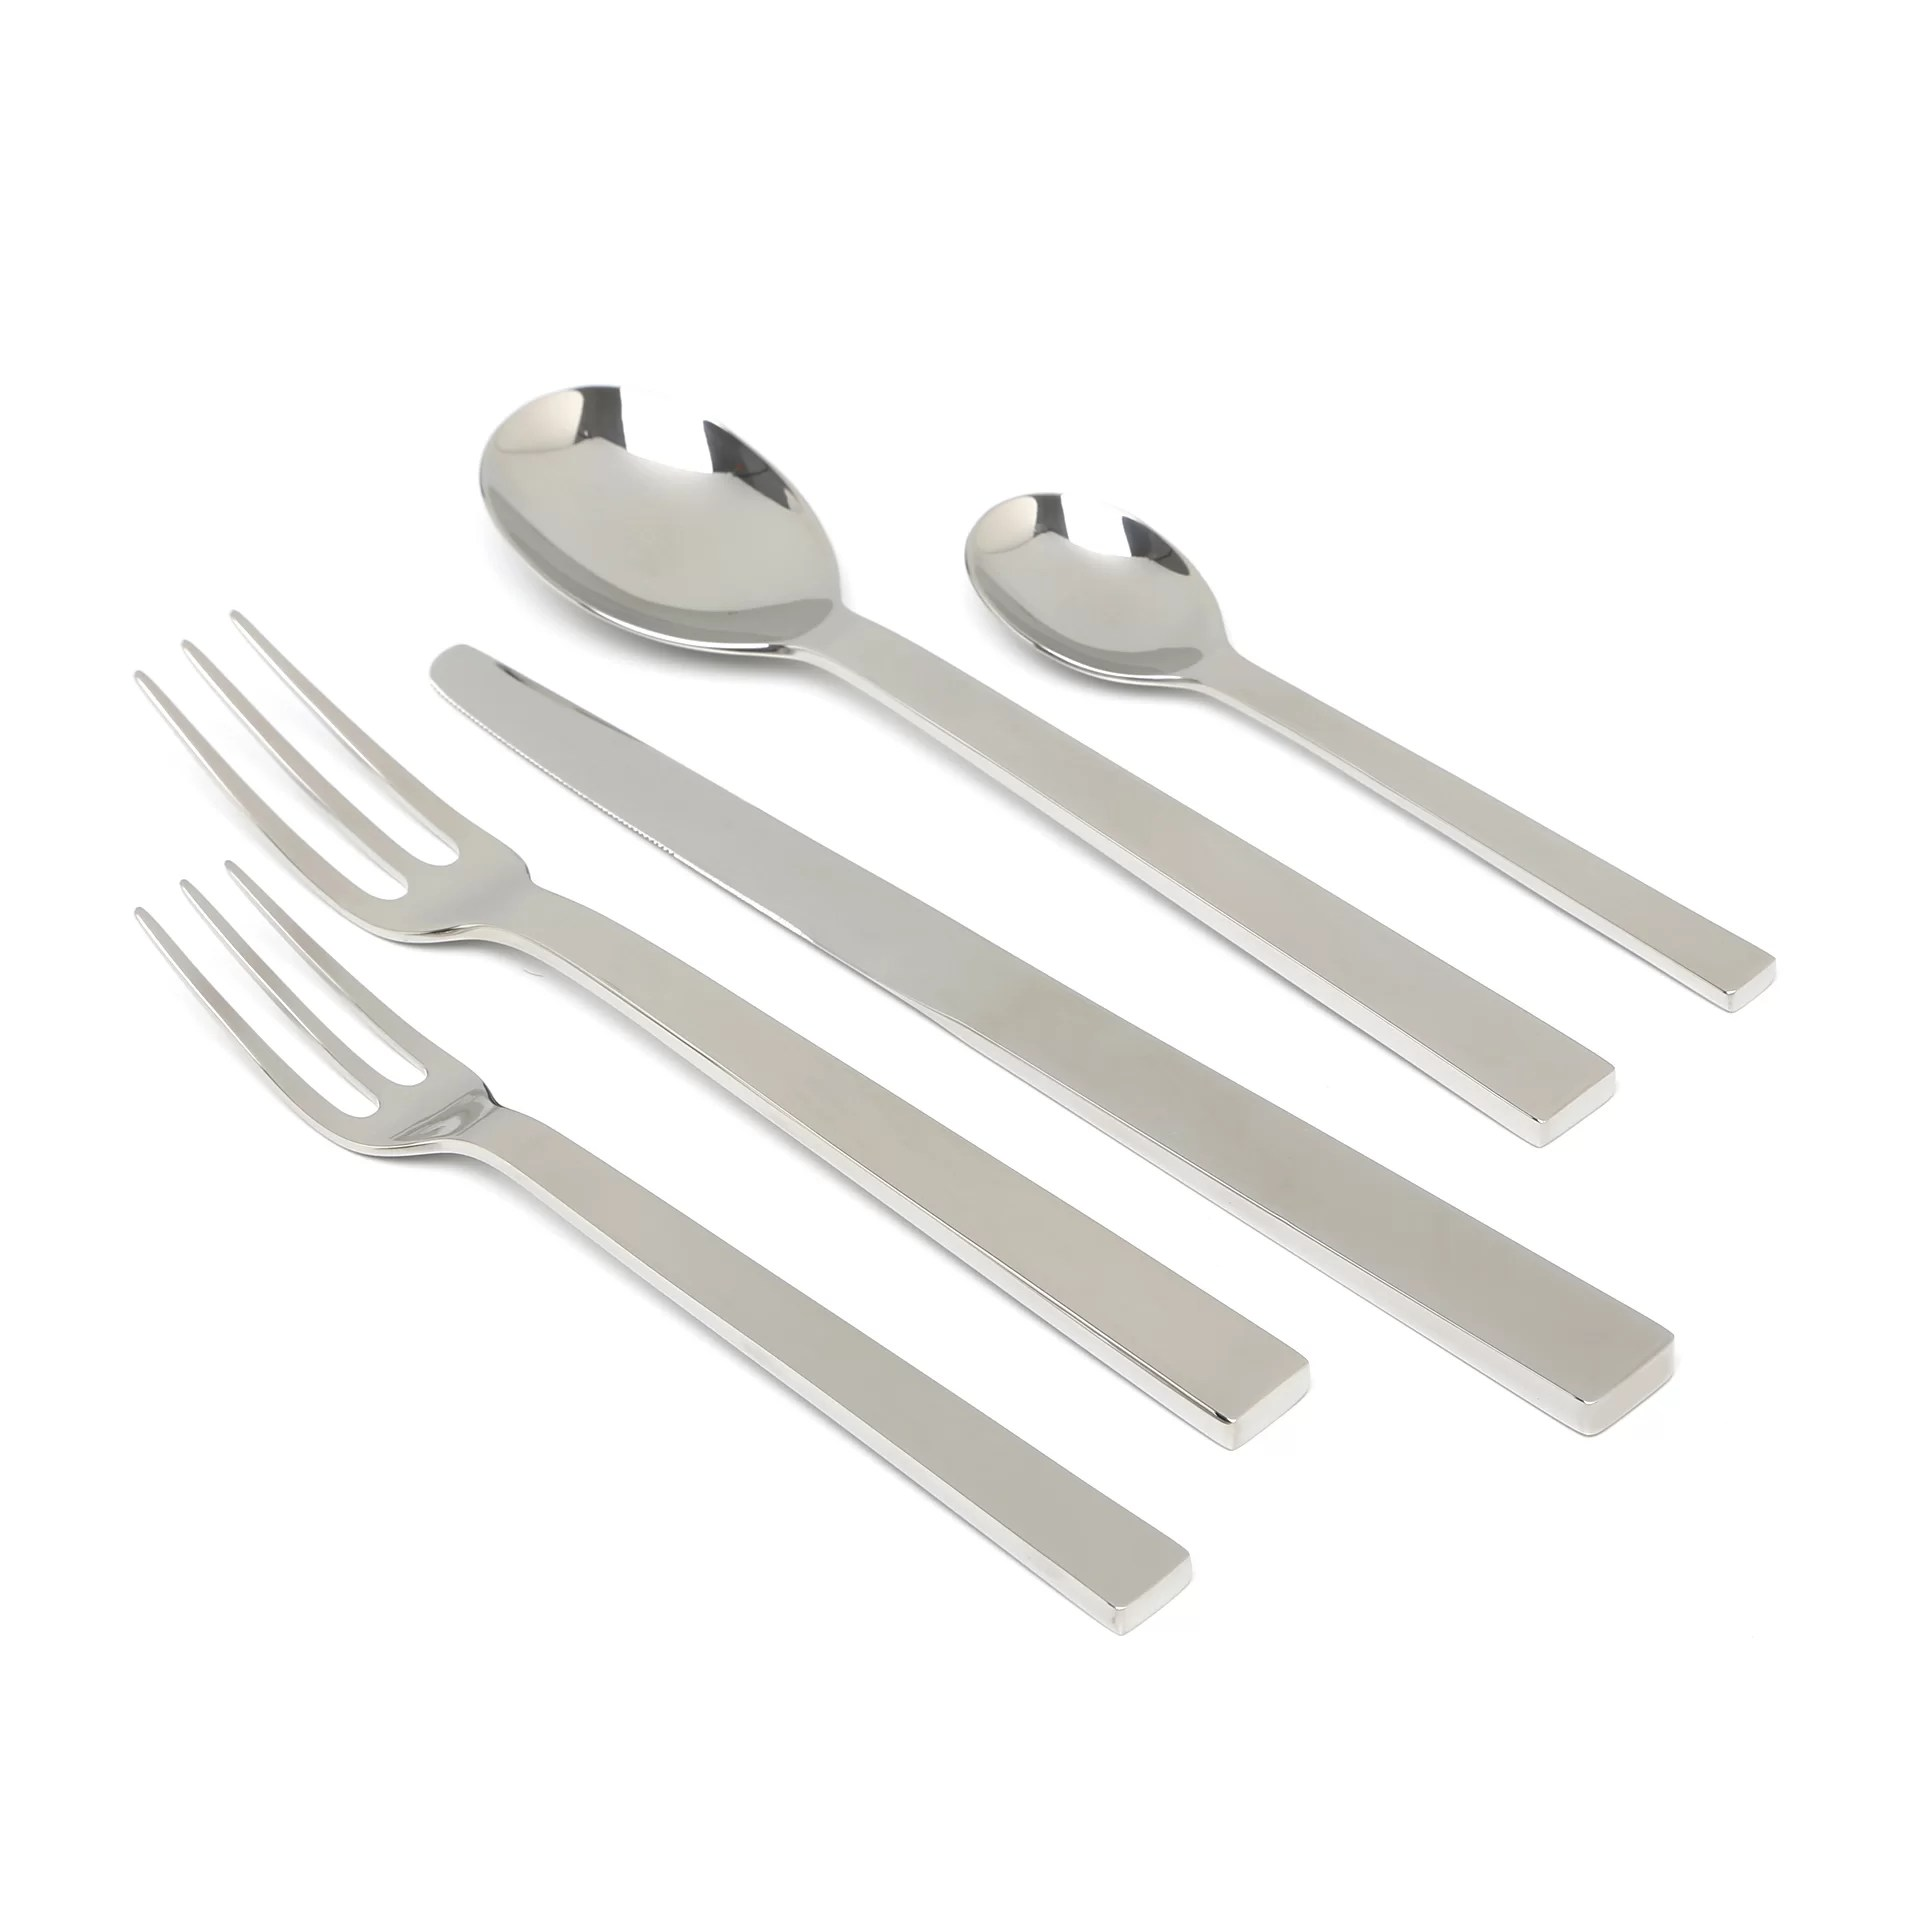 Alessi Silverware Alessi David Chipperfield Santiago 5 Piece Flatware Set